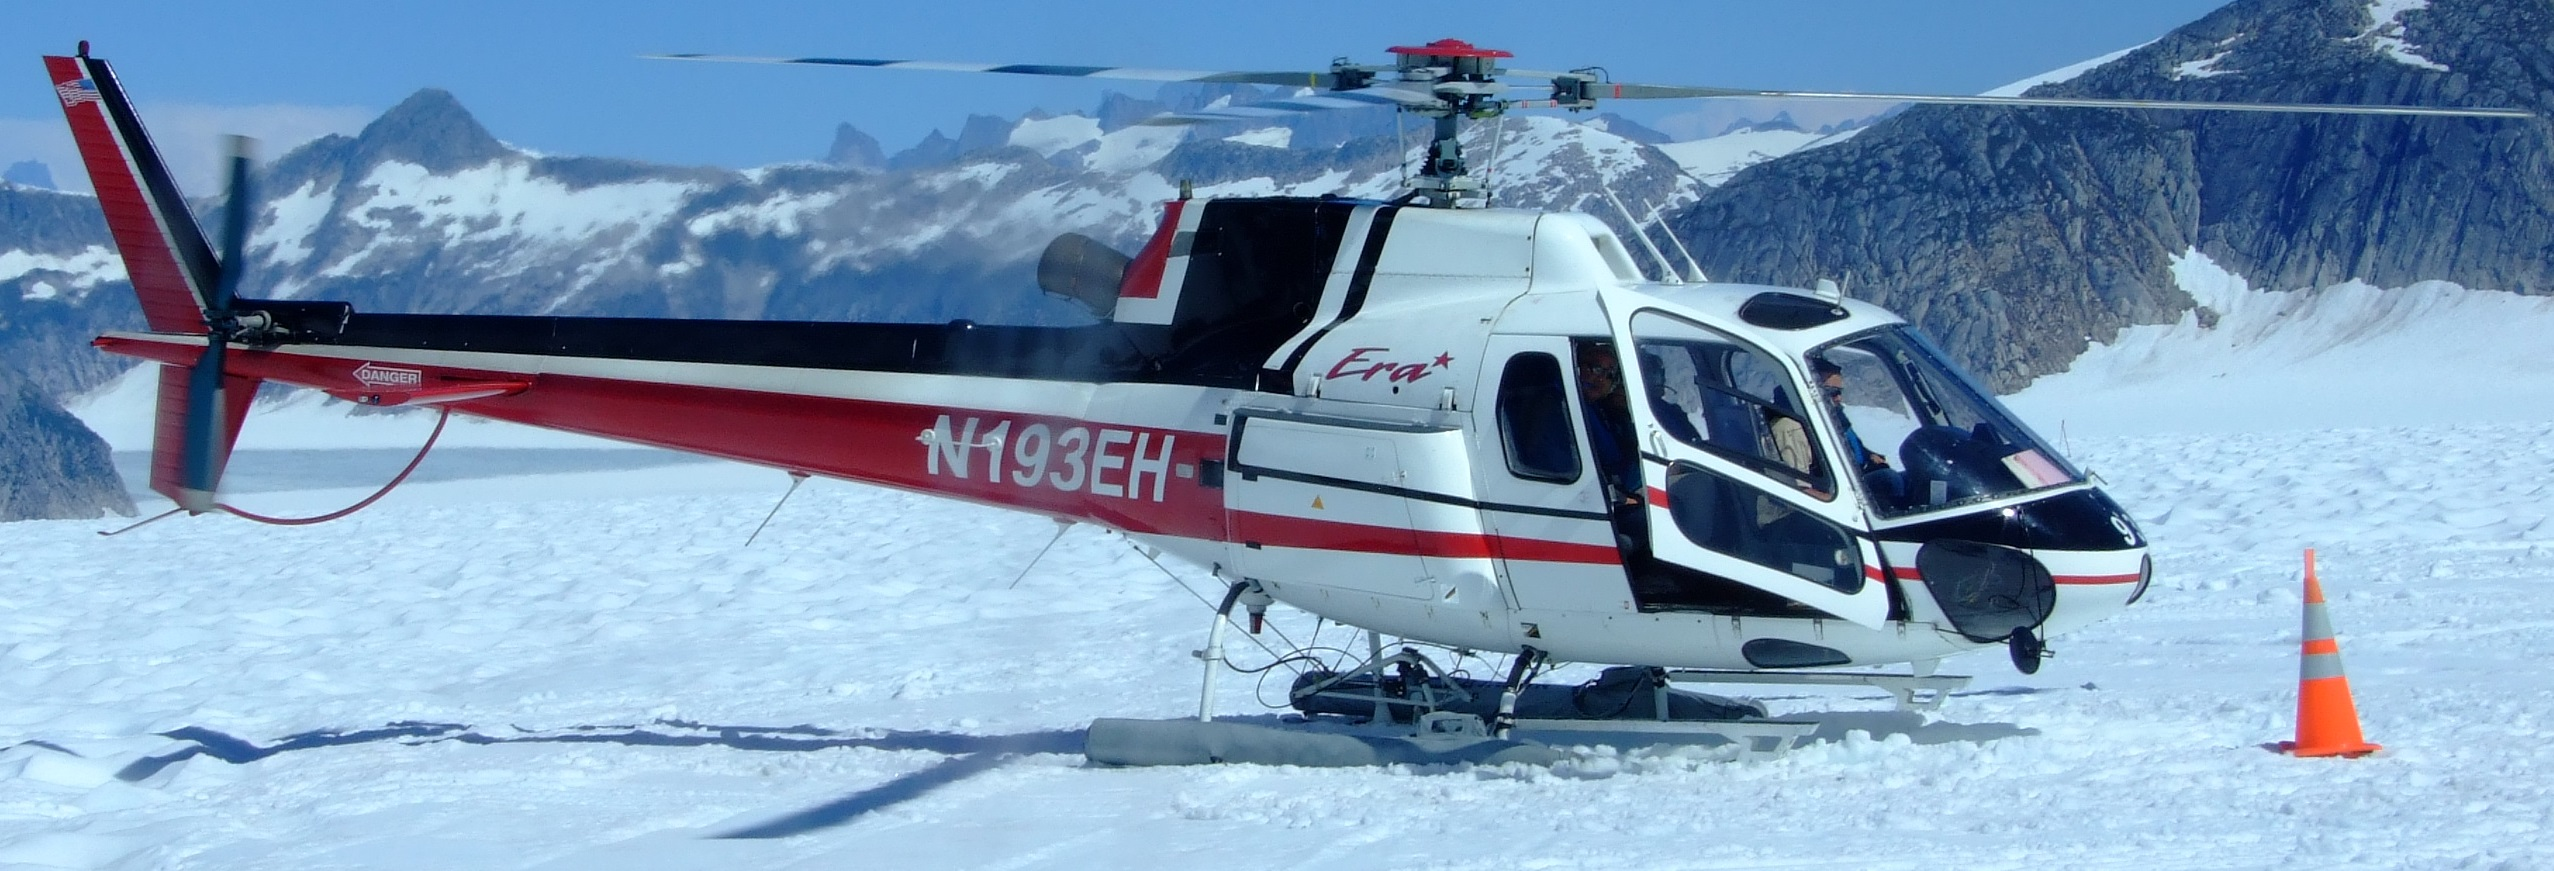 Era has a total fleet of 31 AS350 helicopters, 11 of which are based in Alaska and are used for tourist trips out of Juneau and around Denali.